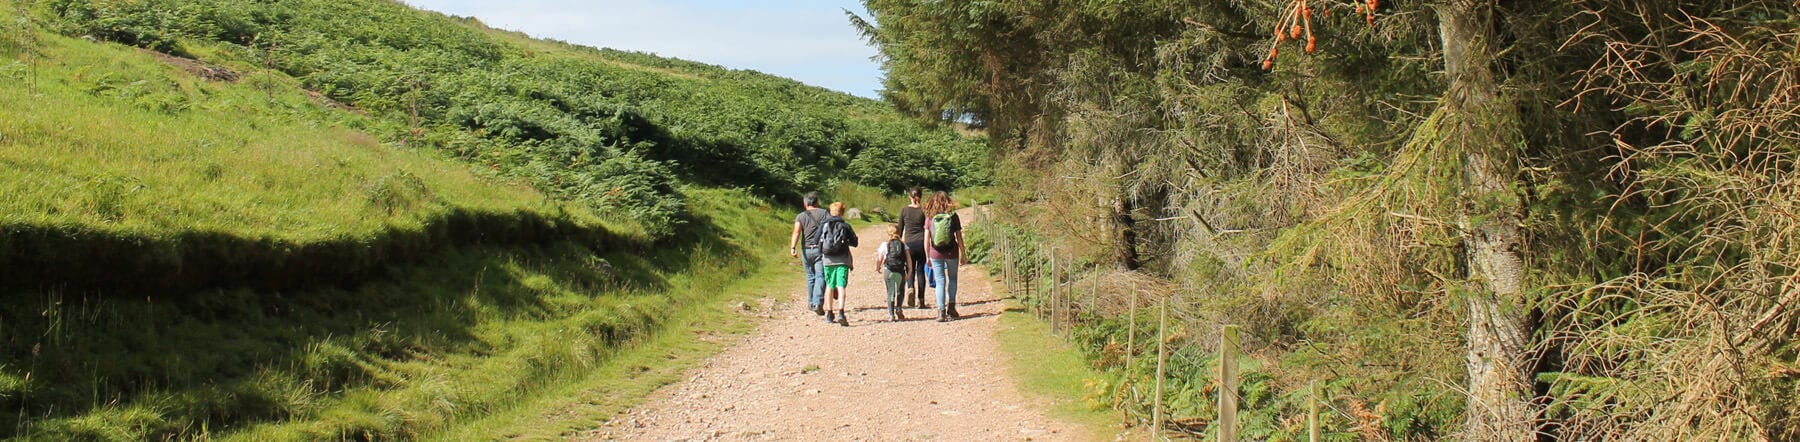 Family walking holiday in the Cheviots